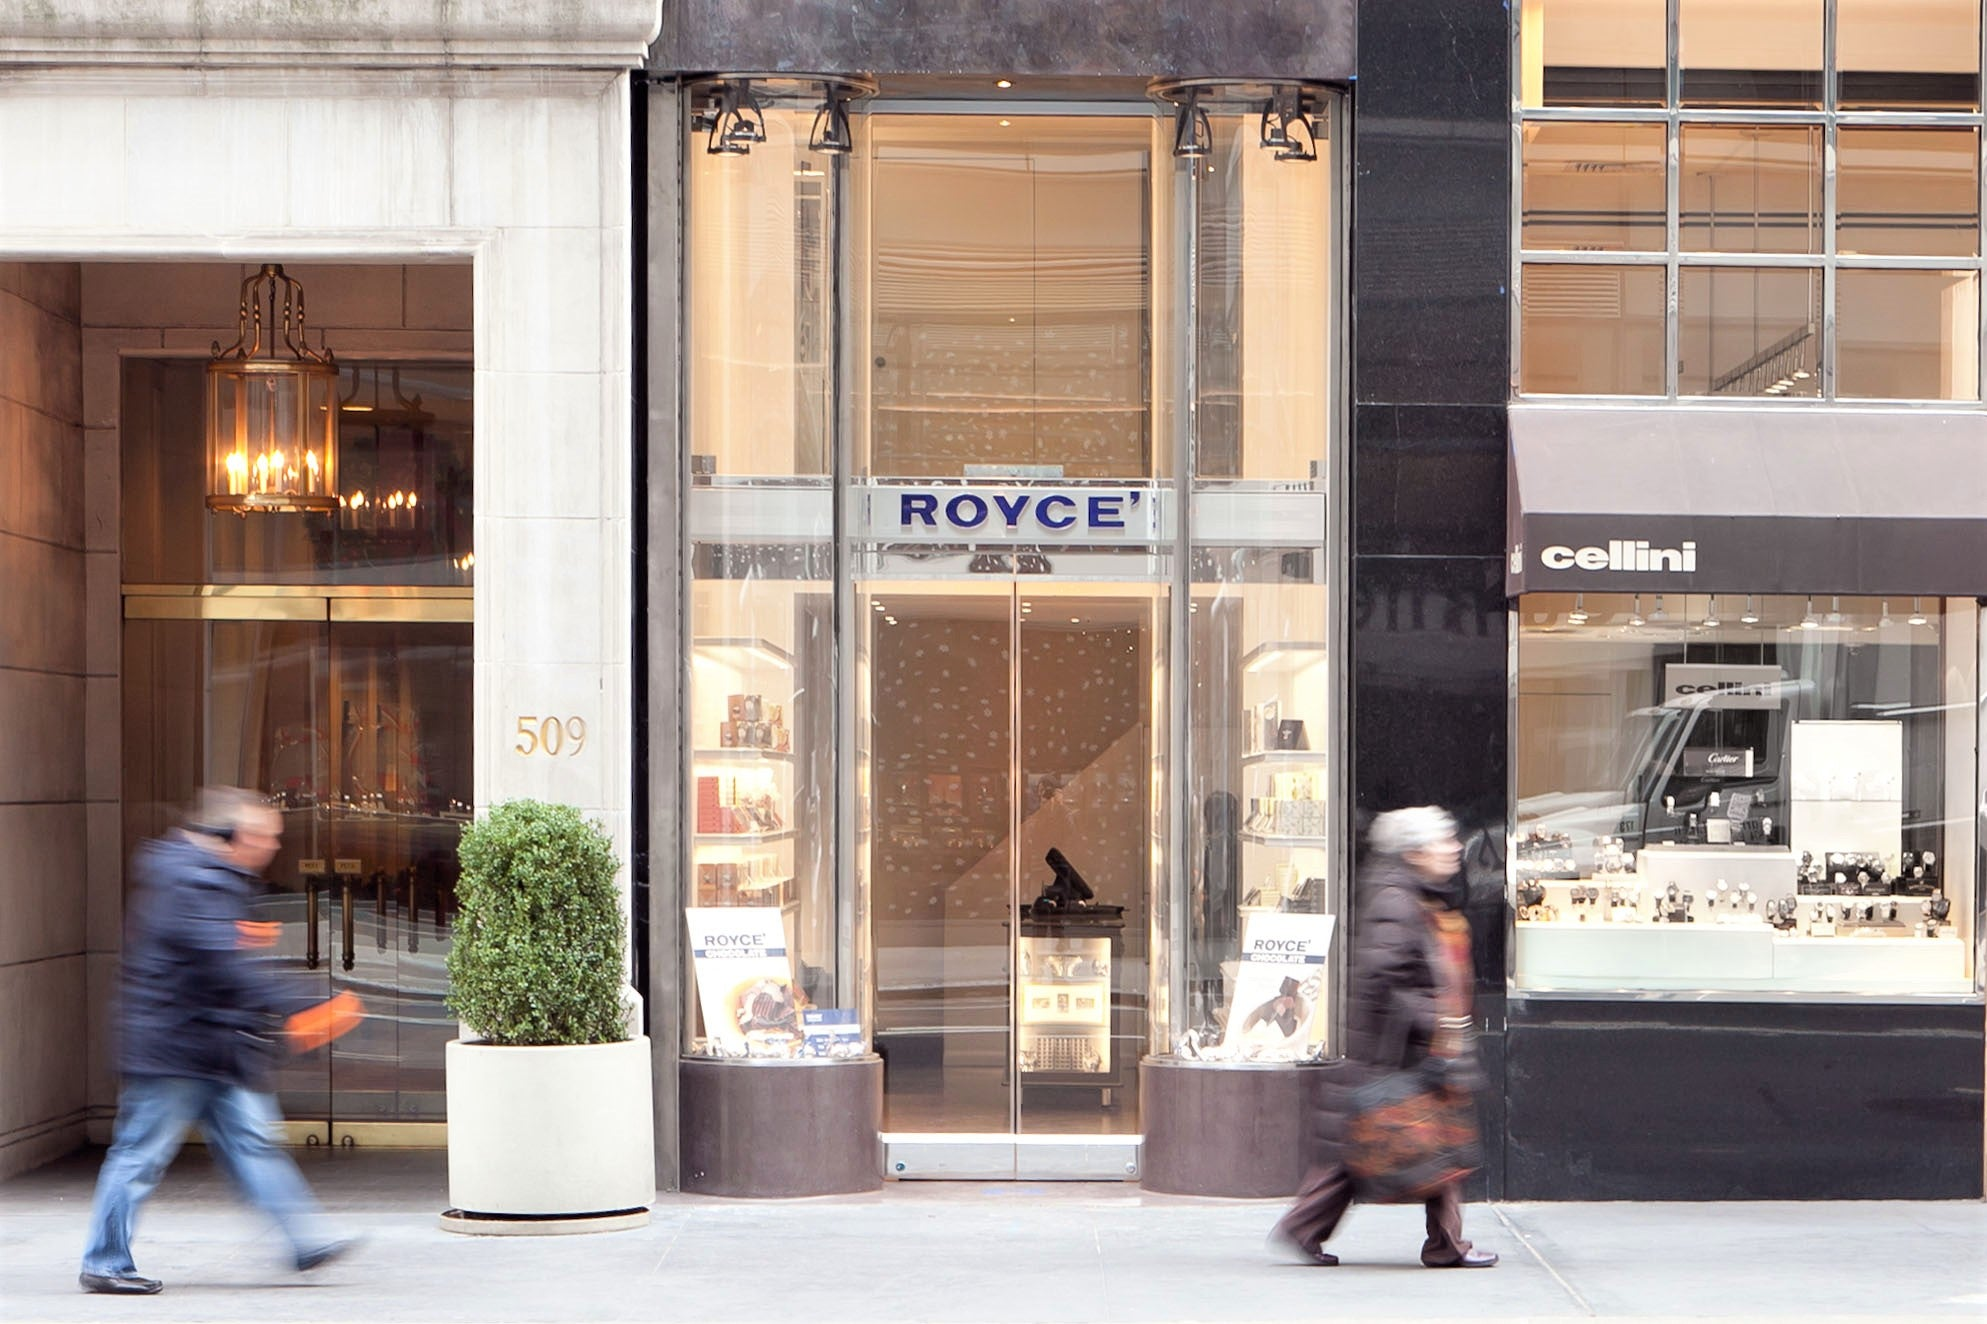 royce new york city chocolate boutiques royce confect usa online boutique royce new york city chocolate